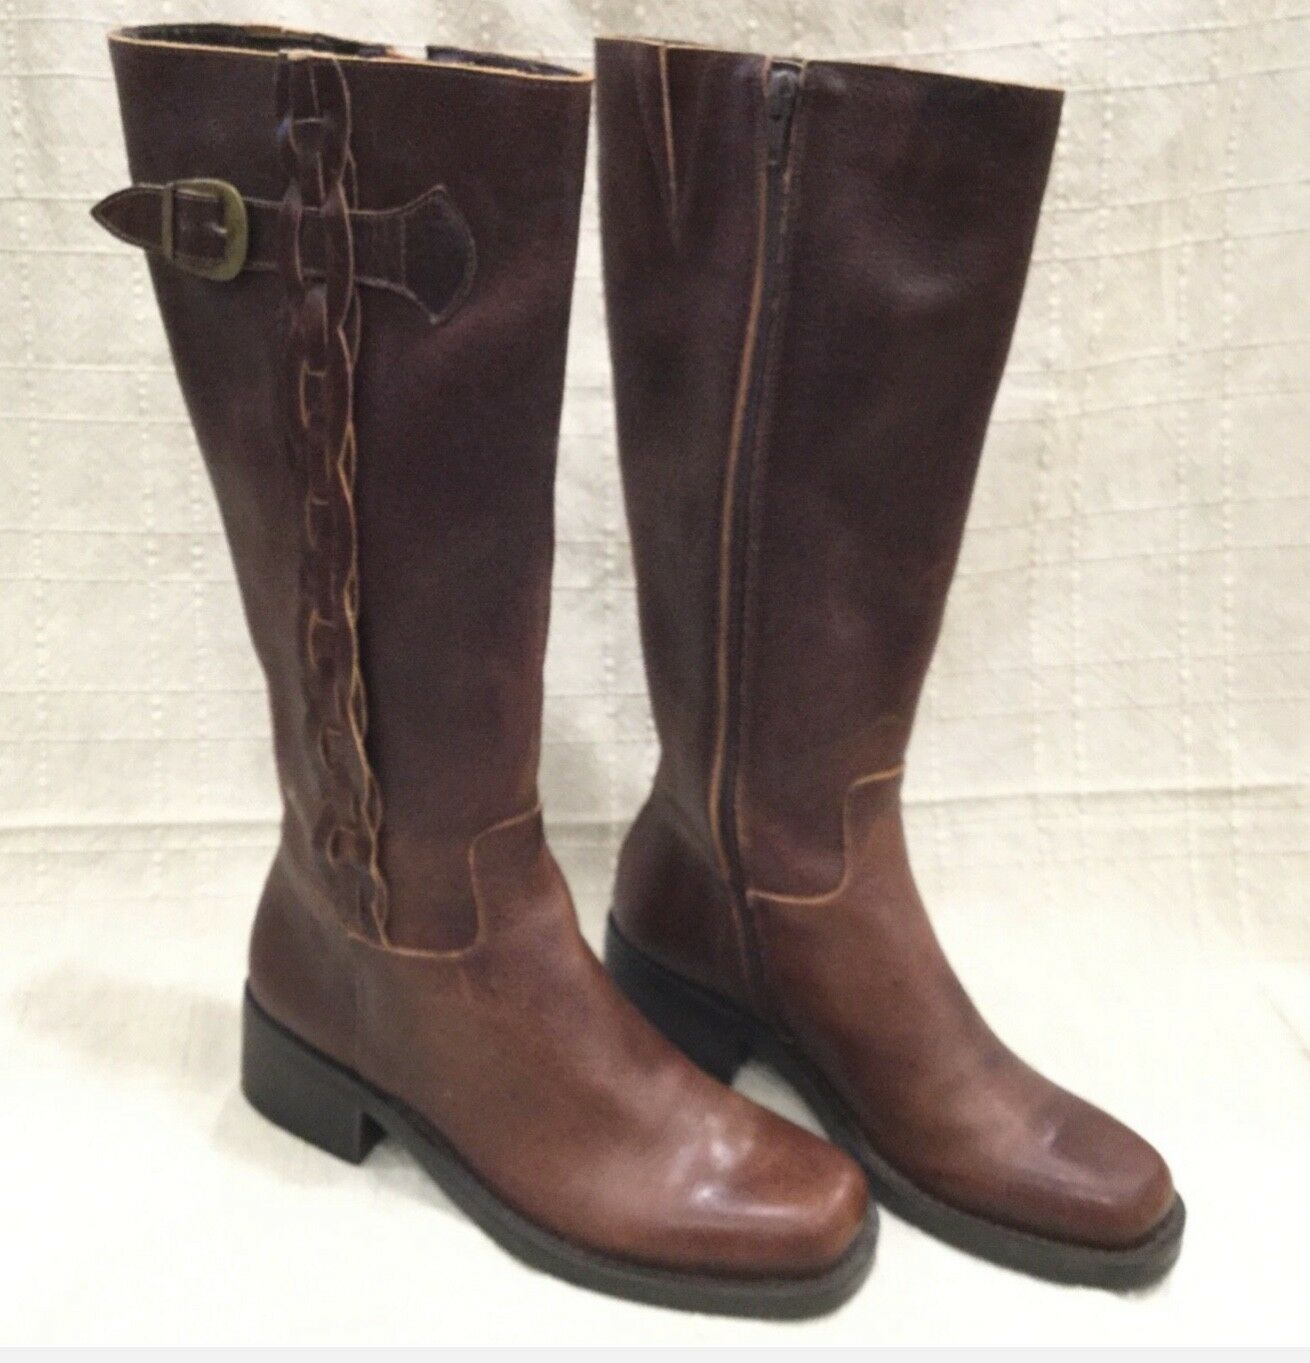 New NICOLE Vtg Brown Leather RIDING  Braided Braided Braided Accent Boots 6 M Boho western 0dc4a6